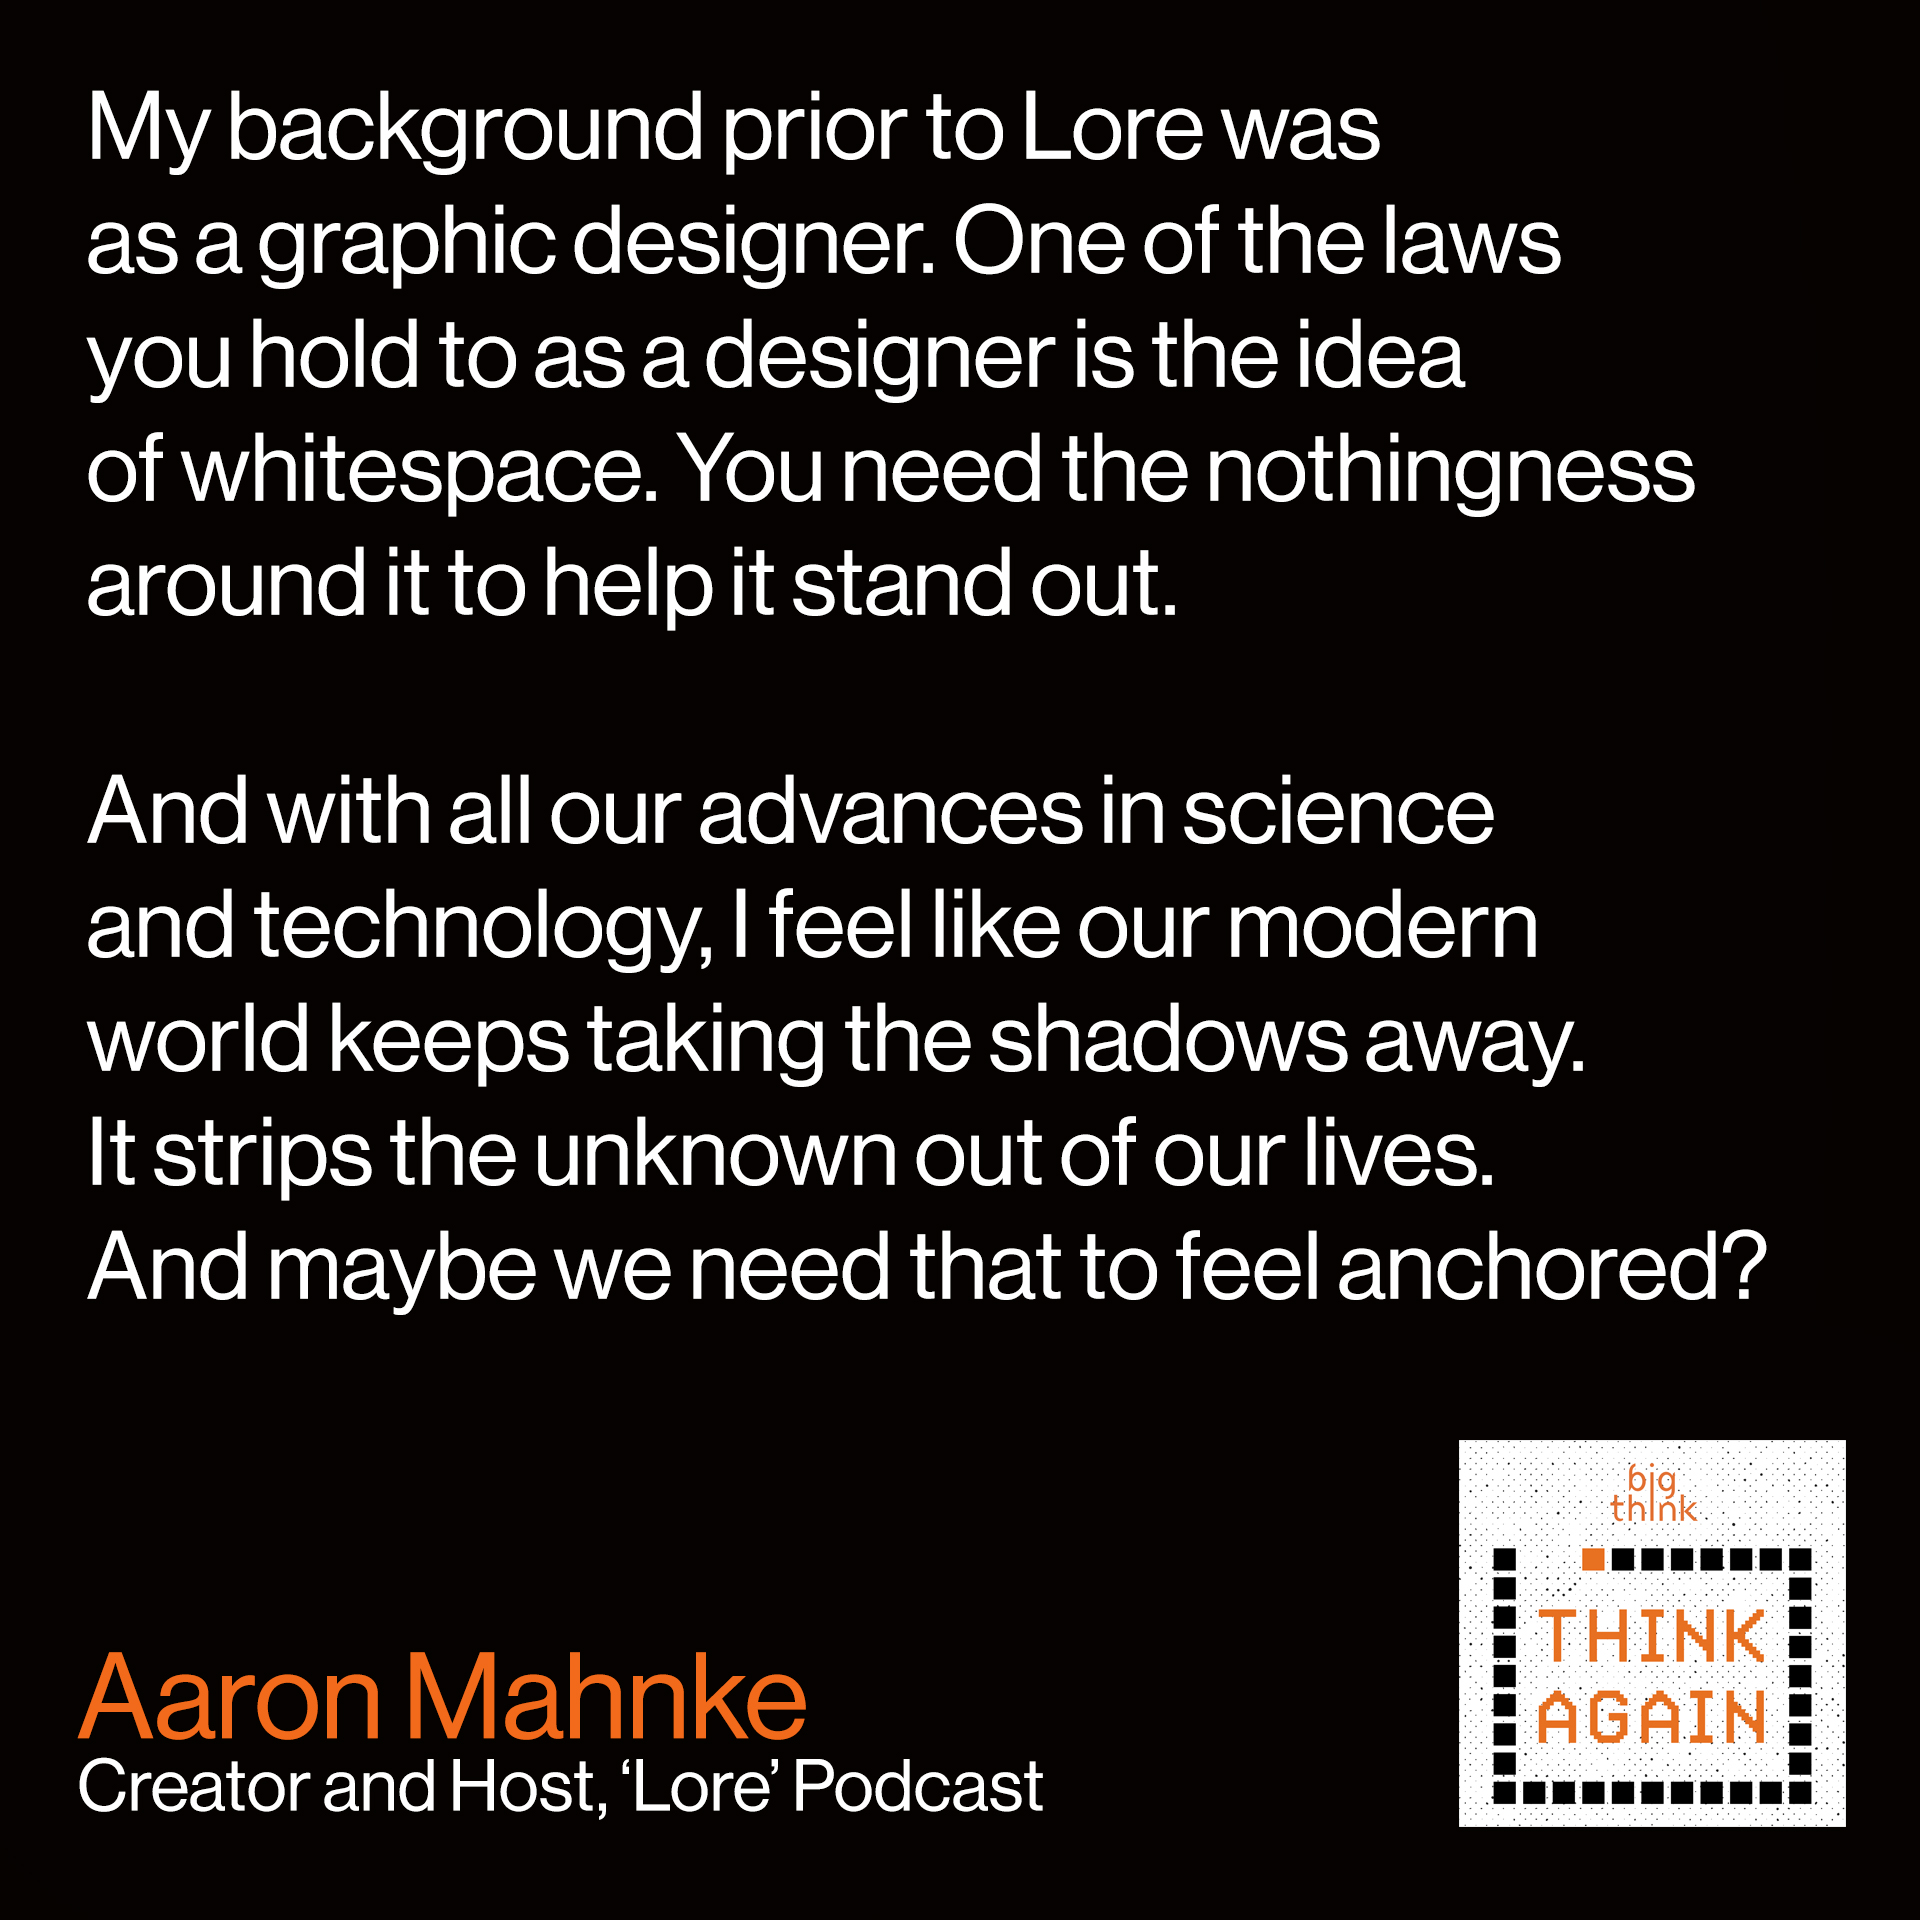 Aaron Mahnke Quote: My background prior to Lore was as a graphic designer.  One of the laws you hold to as a designer is the idea of whitespace. You need  the nothingness around it to help it stand out.   And with all our advances in science and technology and medicine,  I feel like our modern world keeps taking the shadows away from us.  It strips the unknown out of our lives. And we need that to feel anchored.